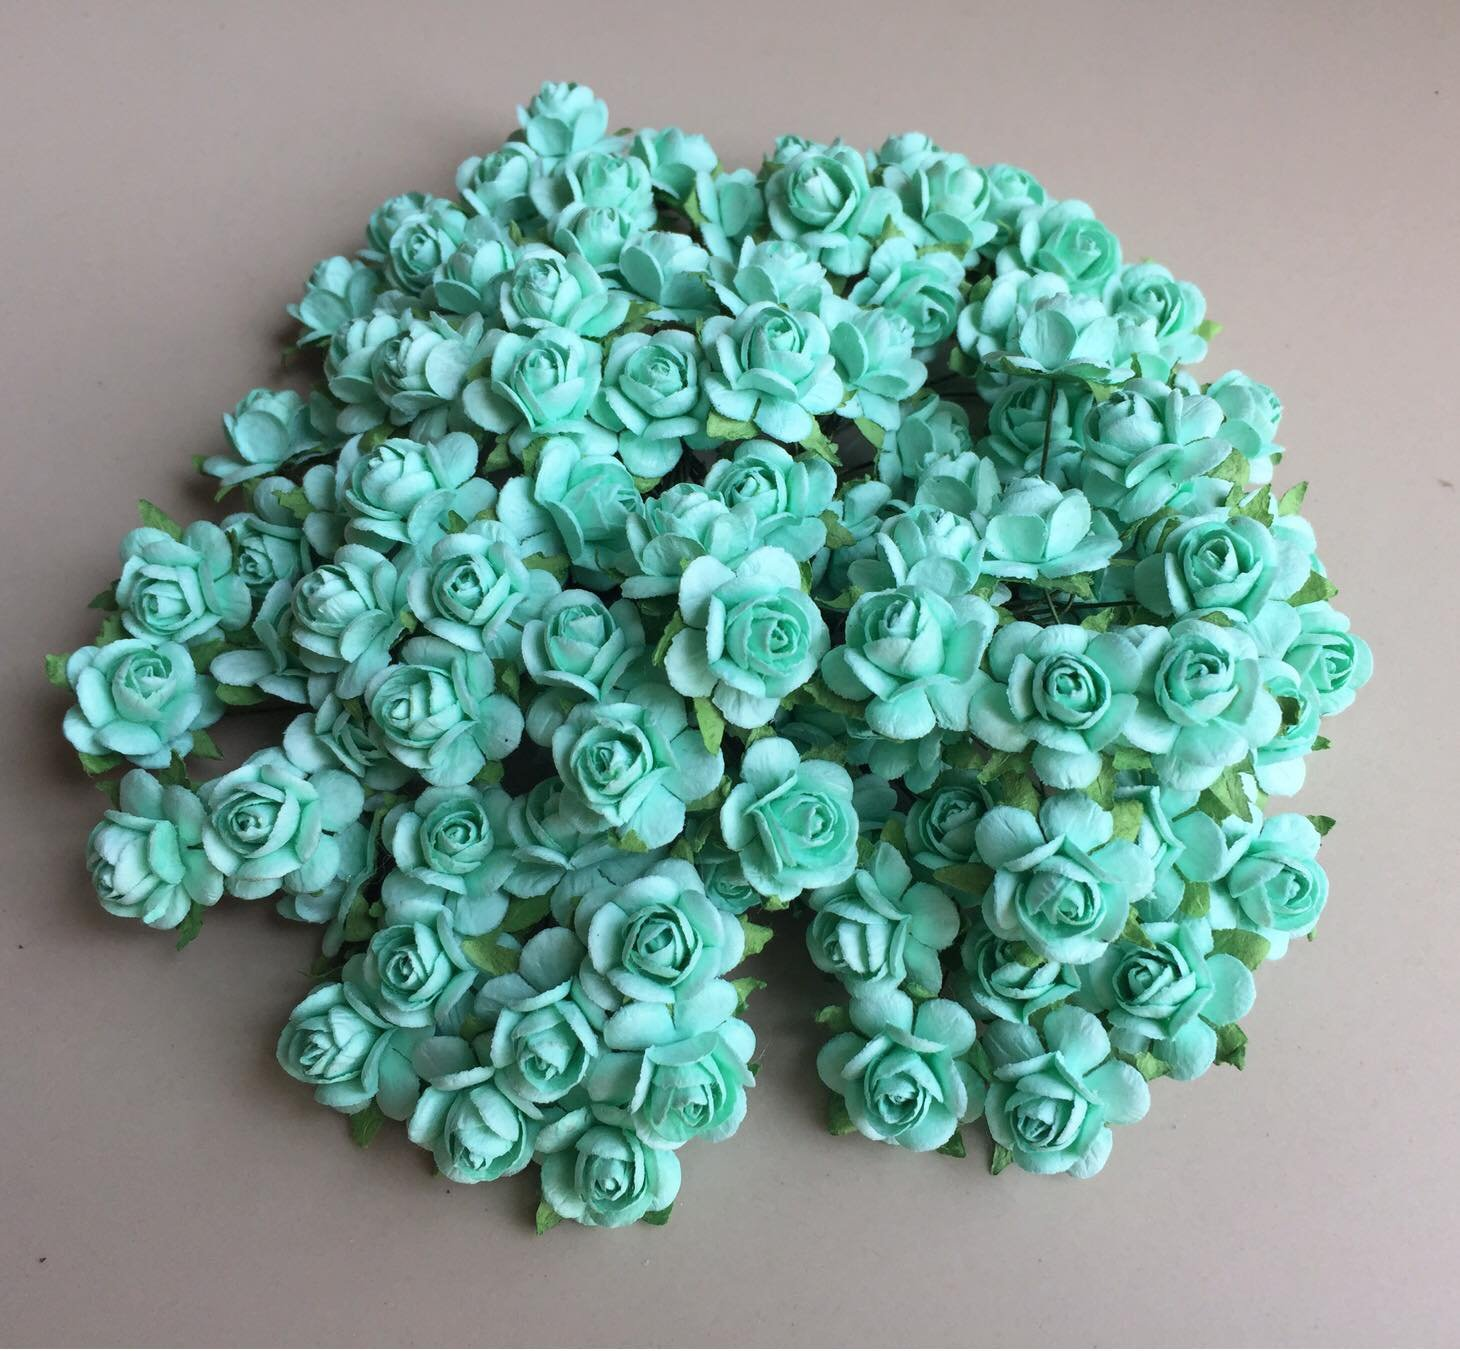 100 pcs mini Rose Mint Green color Mulberry Paper Flower 20 mm scrapbooking wedding doll house supplies card By' Thai decorated by Thai Decorated